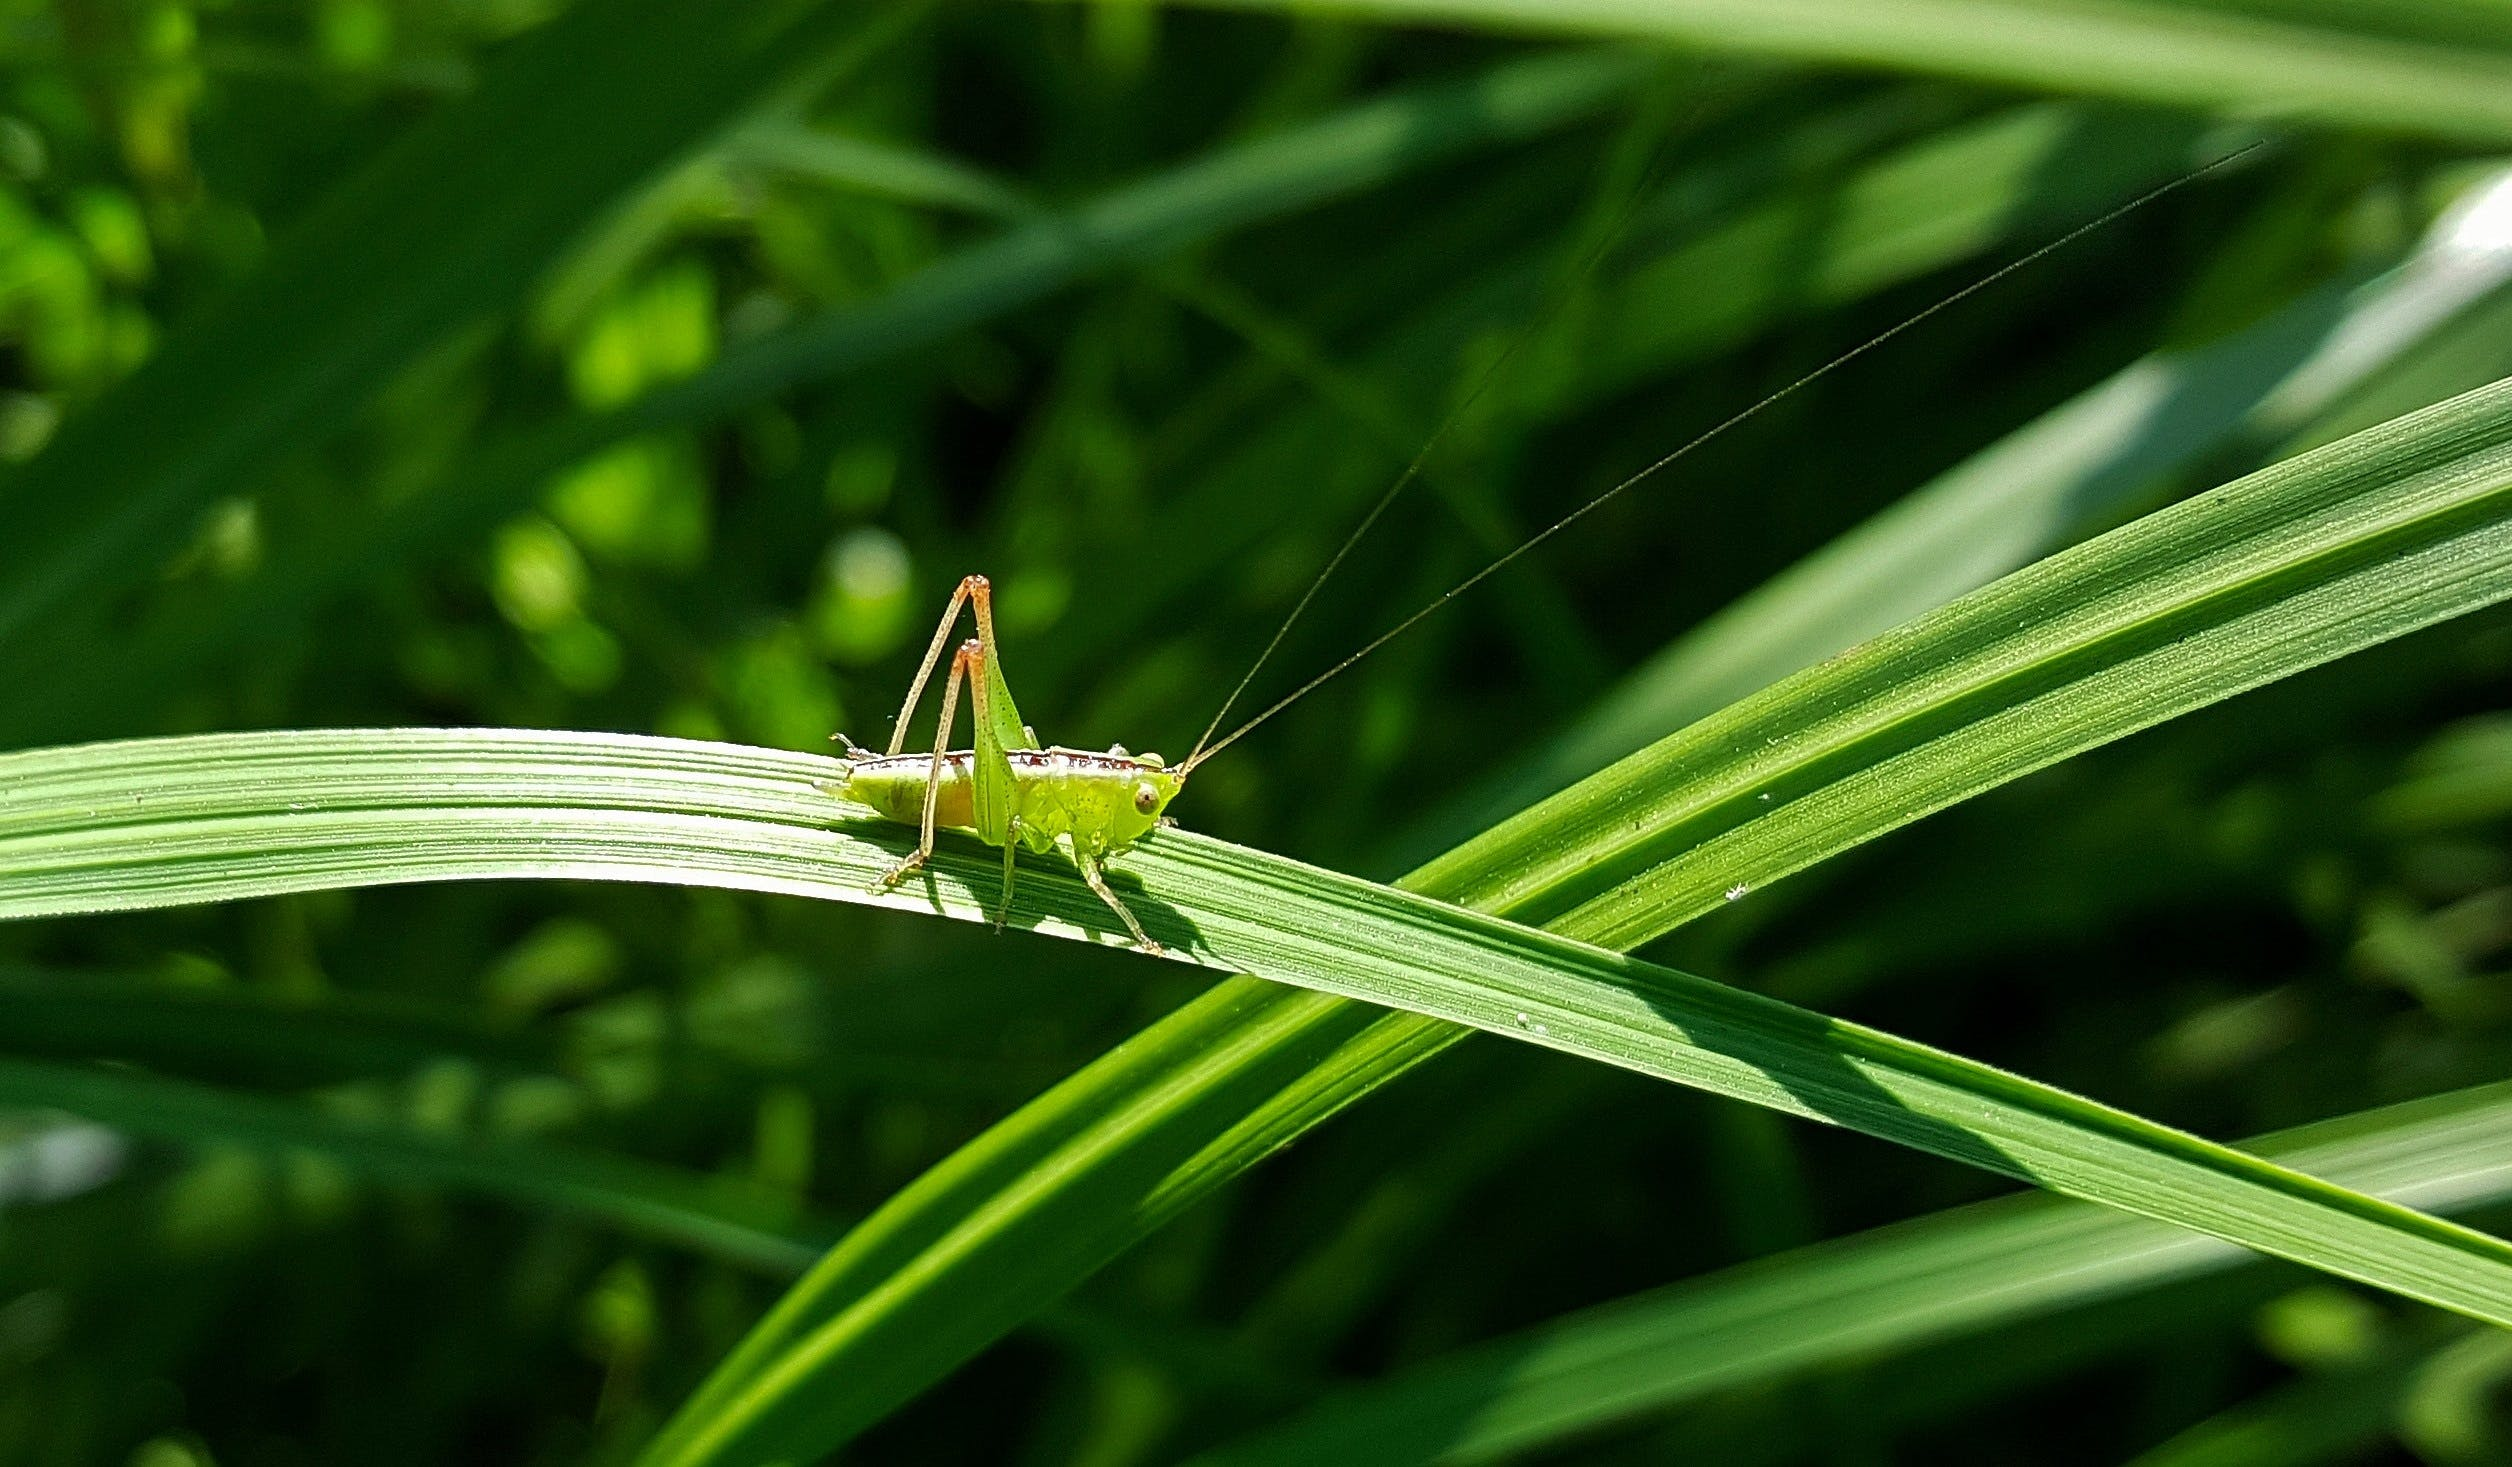 Green Grasshopper Perching on the Green Leaf Plant